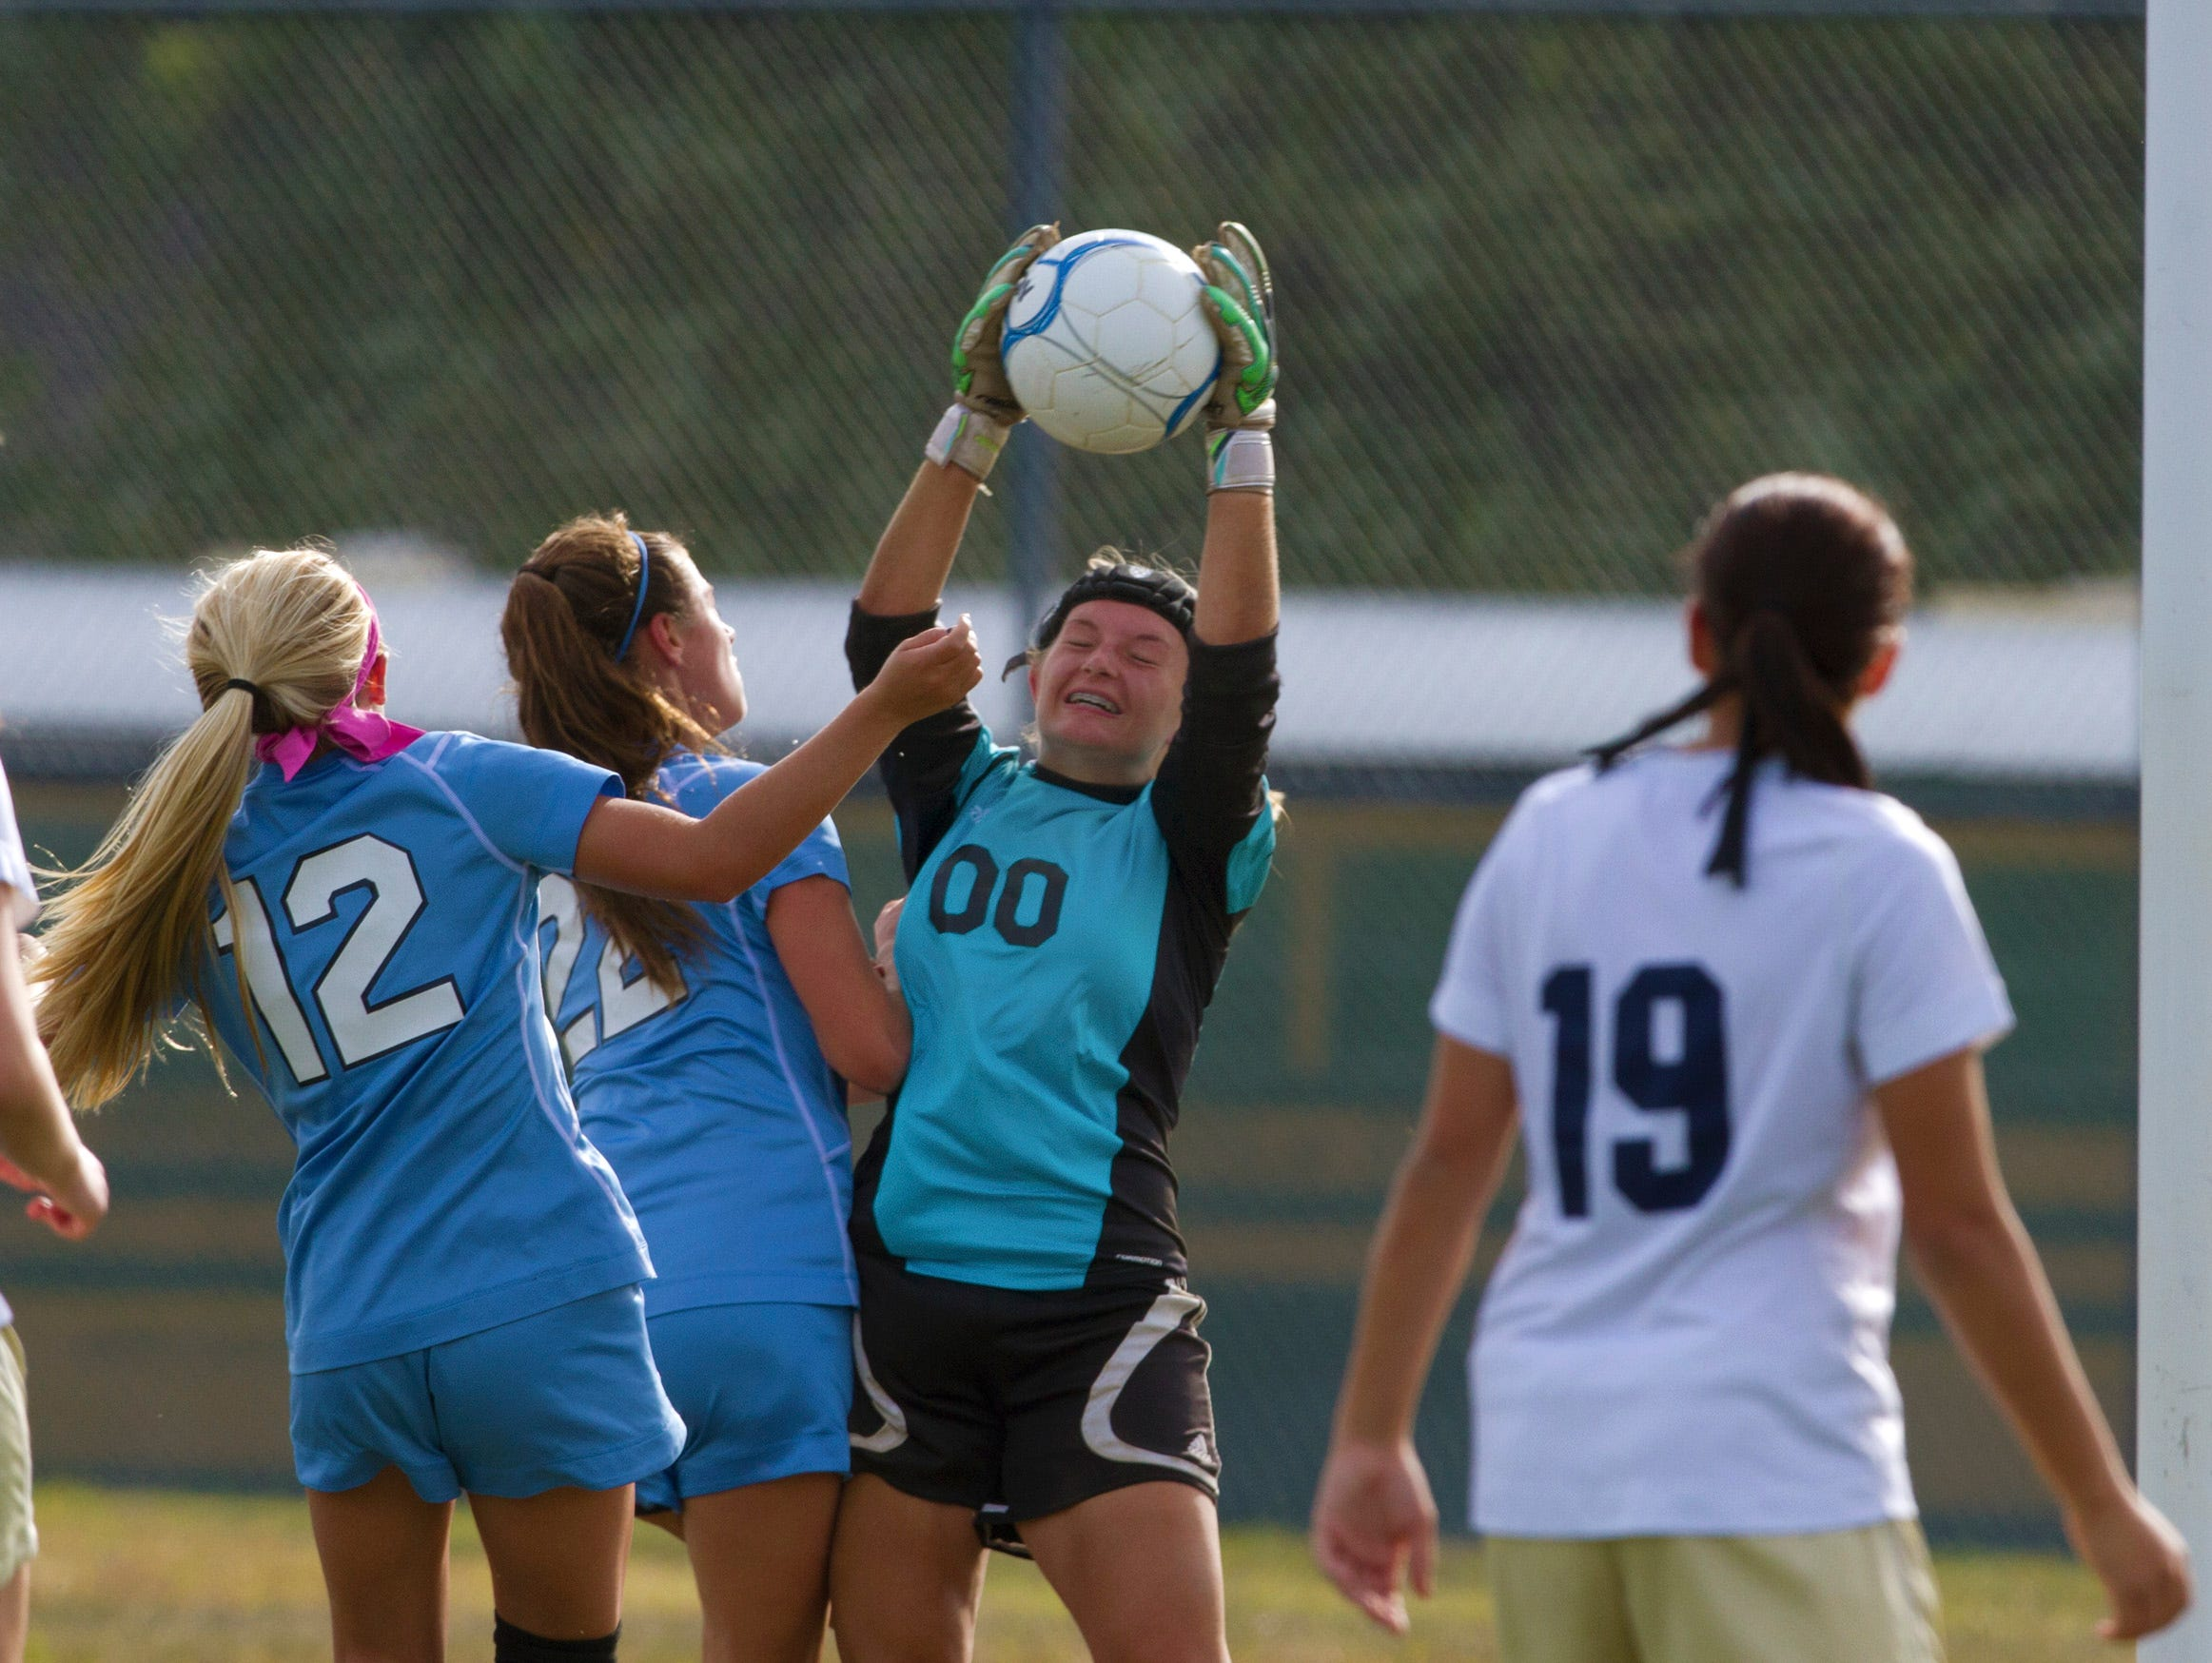 Freehold Township goalie Kaela Chadzuito pulls in a shot on goal as she's crowded by Freehold Boro's Emma Smith and Carly Columbe. Freehold Township Girls Soccer vs Freehold Boro in Freehold Boro on September 25, 2015.